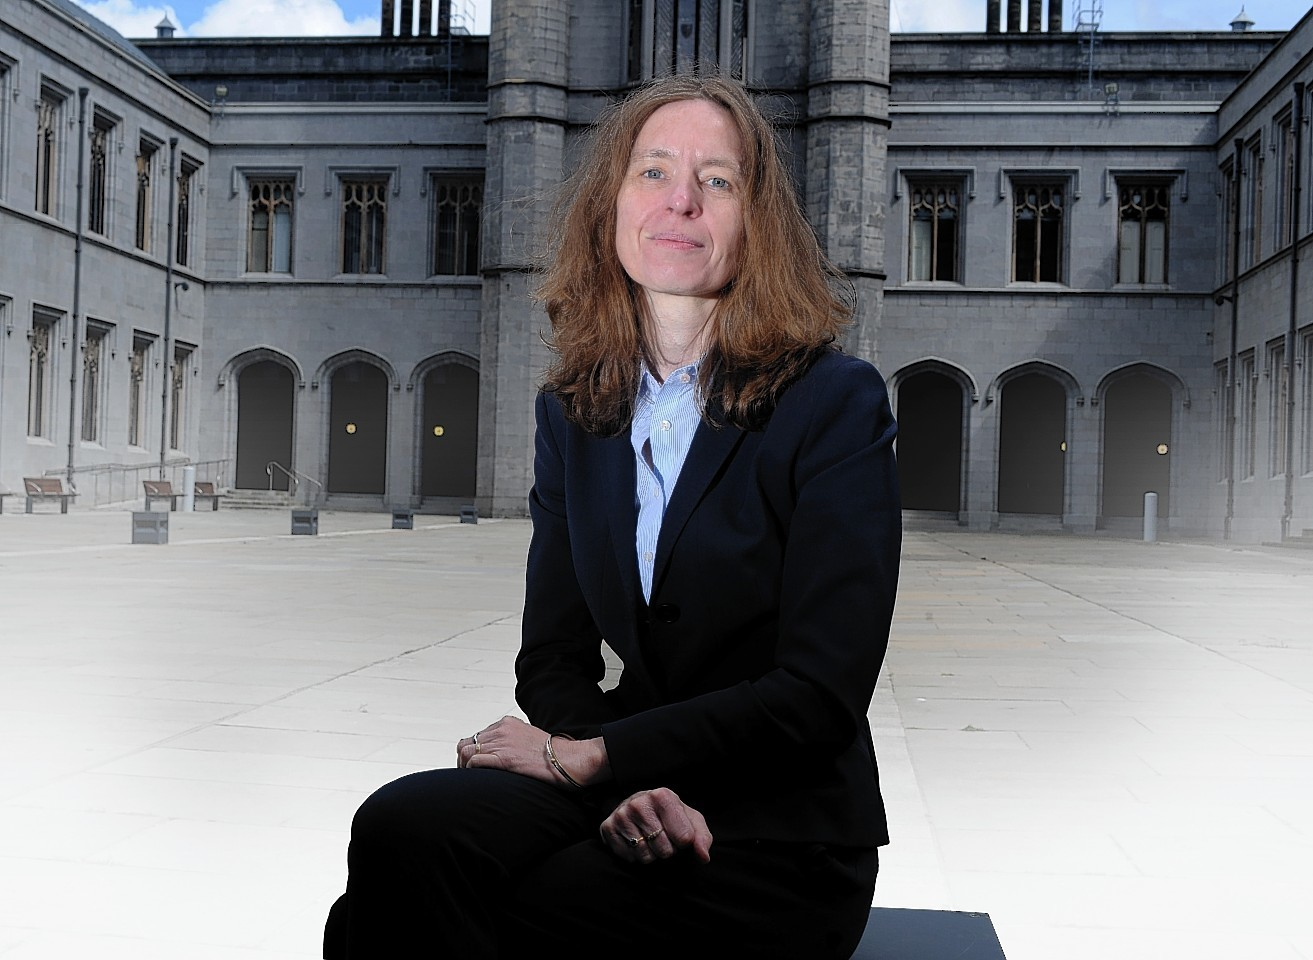 Margaret Bochel is quitting after more than a decade in the key post